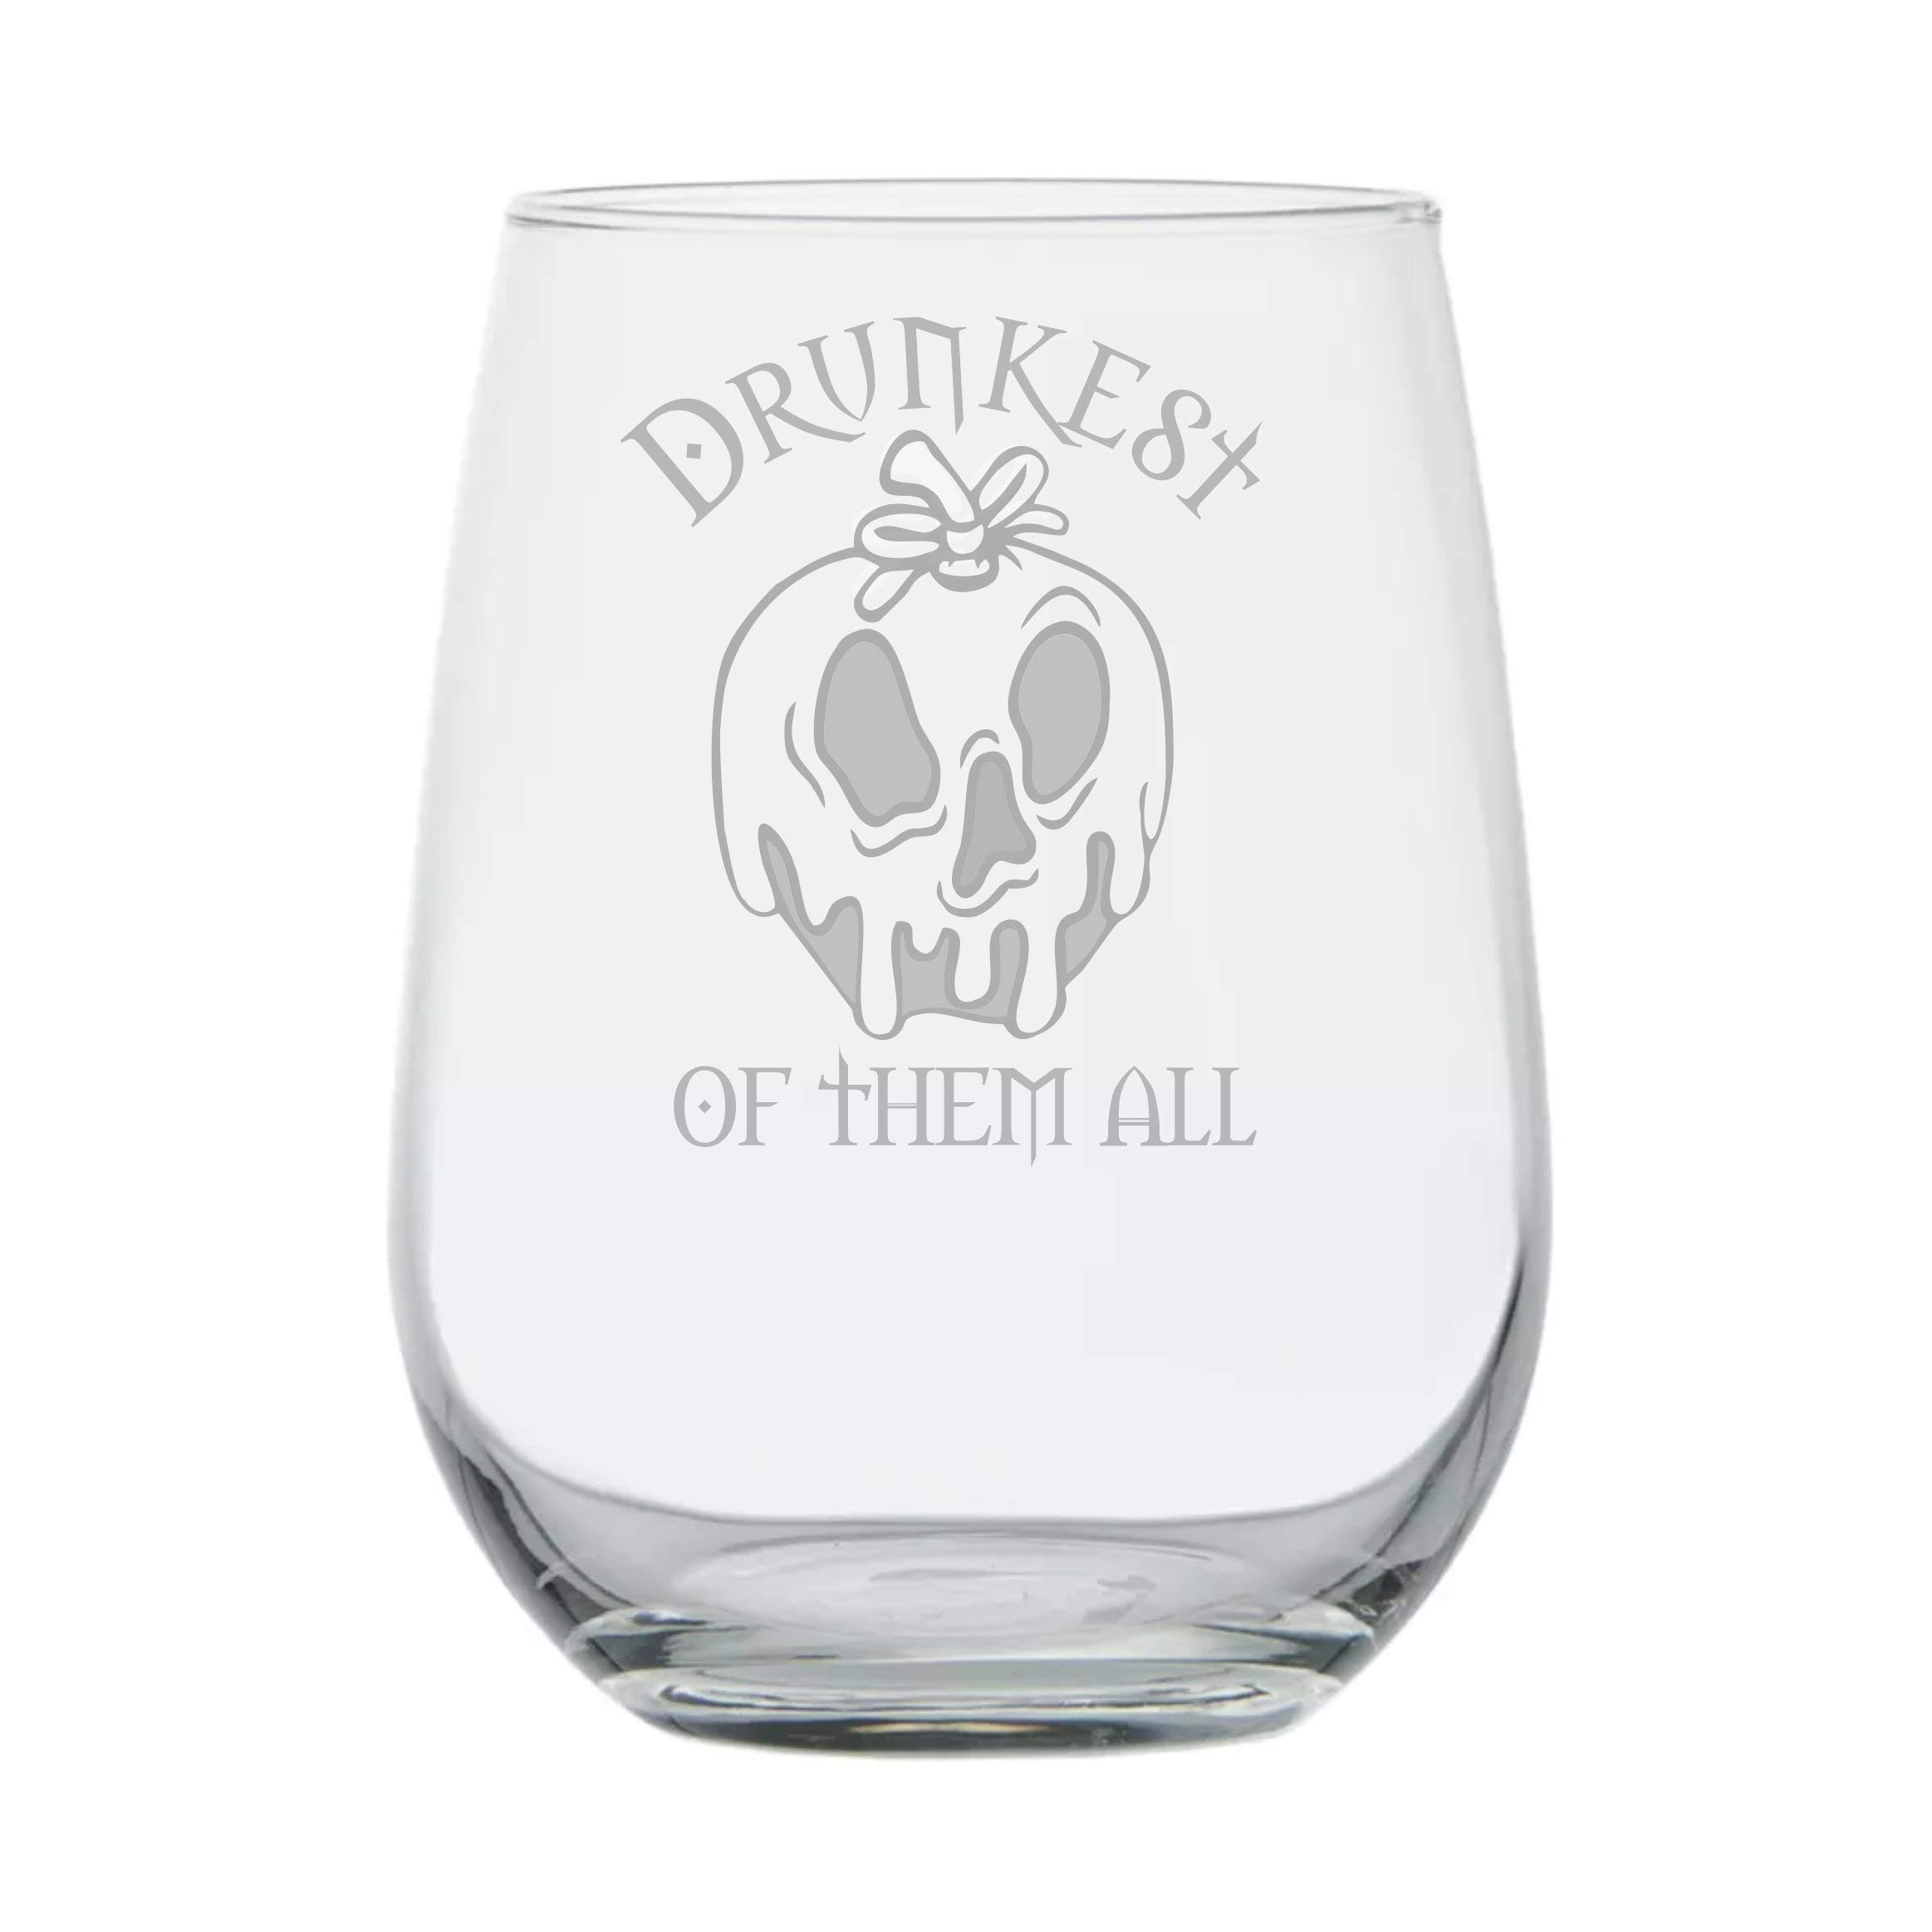 Snow White ★ Drunkest of them All ★ Disney Villain ★ Evil Witch ★ Fairy Tales ★ Funny Birthday Gift ★ Movie Themed Gifts ★ Halloween Wine Glasses ★ Disney Princess Wine Glass ★ Goth Girl